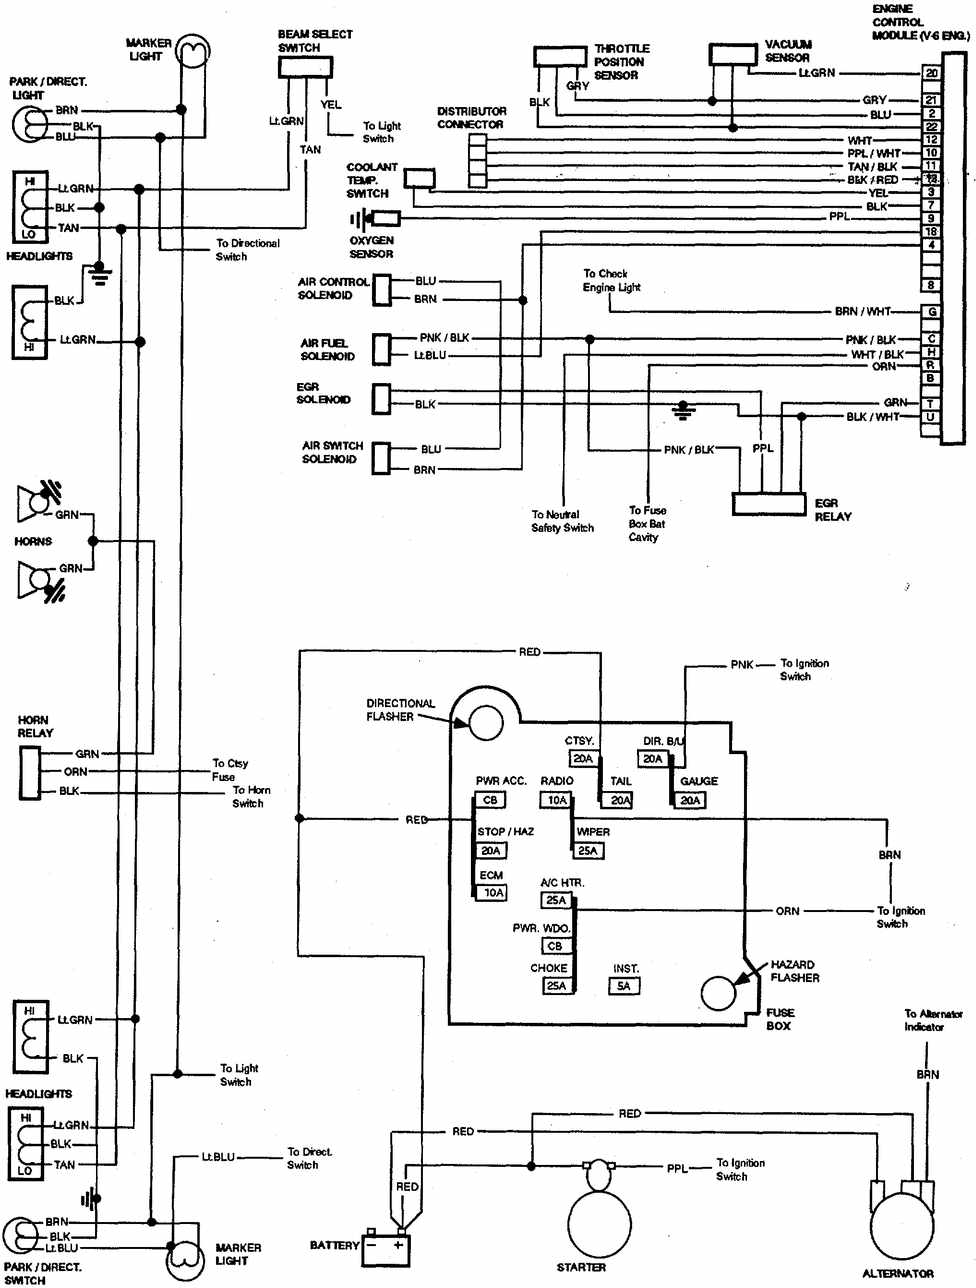 90 gm 2500 connector fuse box diagram